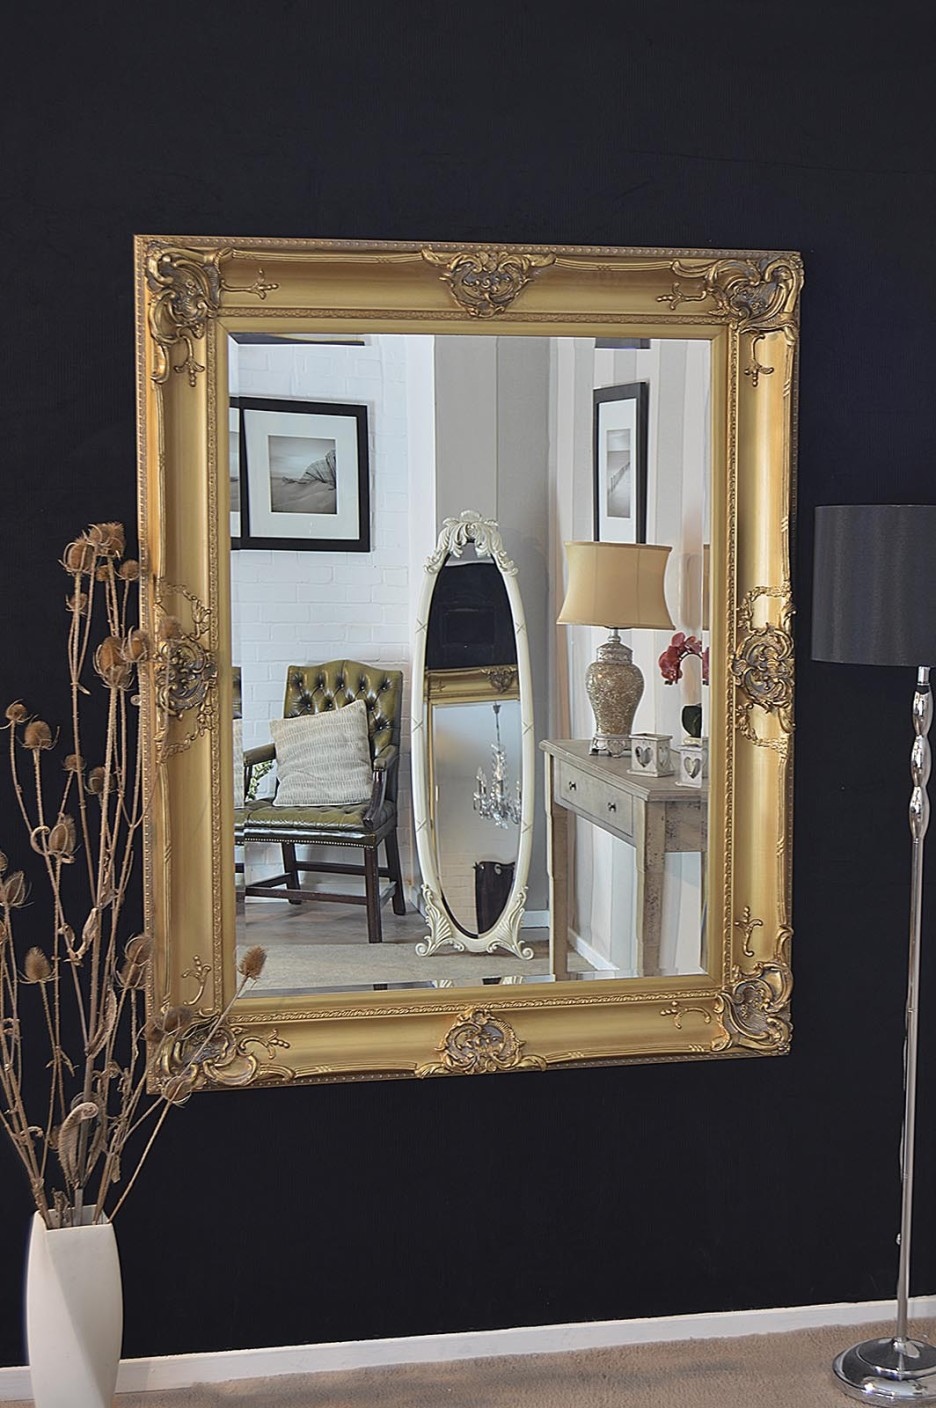 Image of: Decorative Gold Framed Wall Mirror